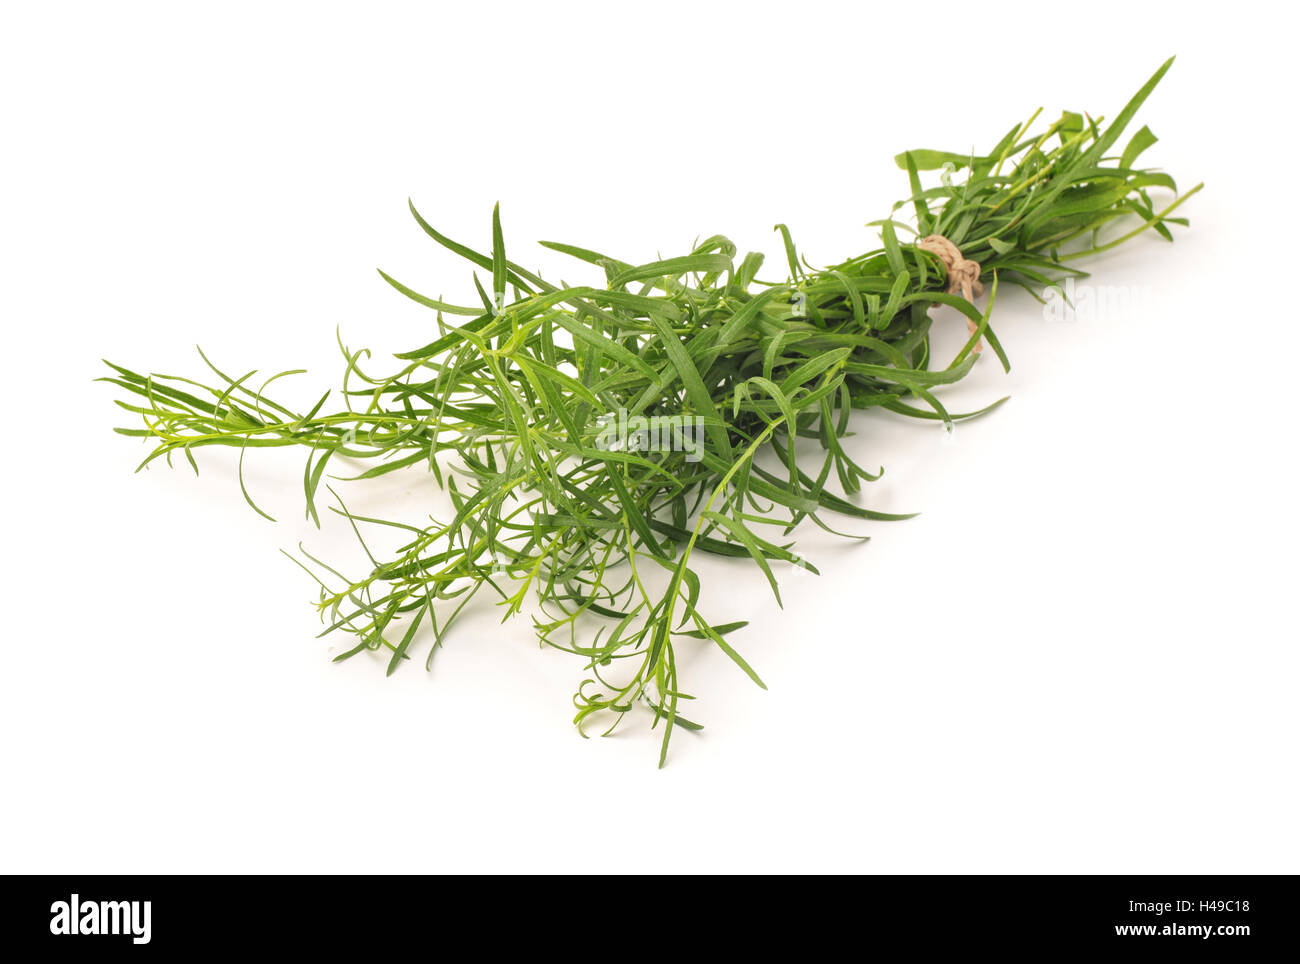 Bunch of fresh tarragon herbs isolated on white - Stock Image